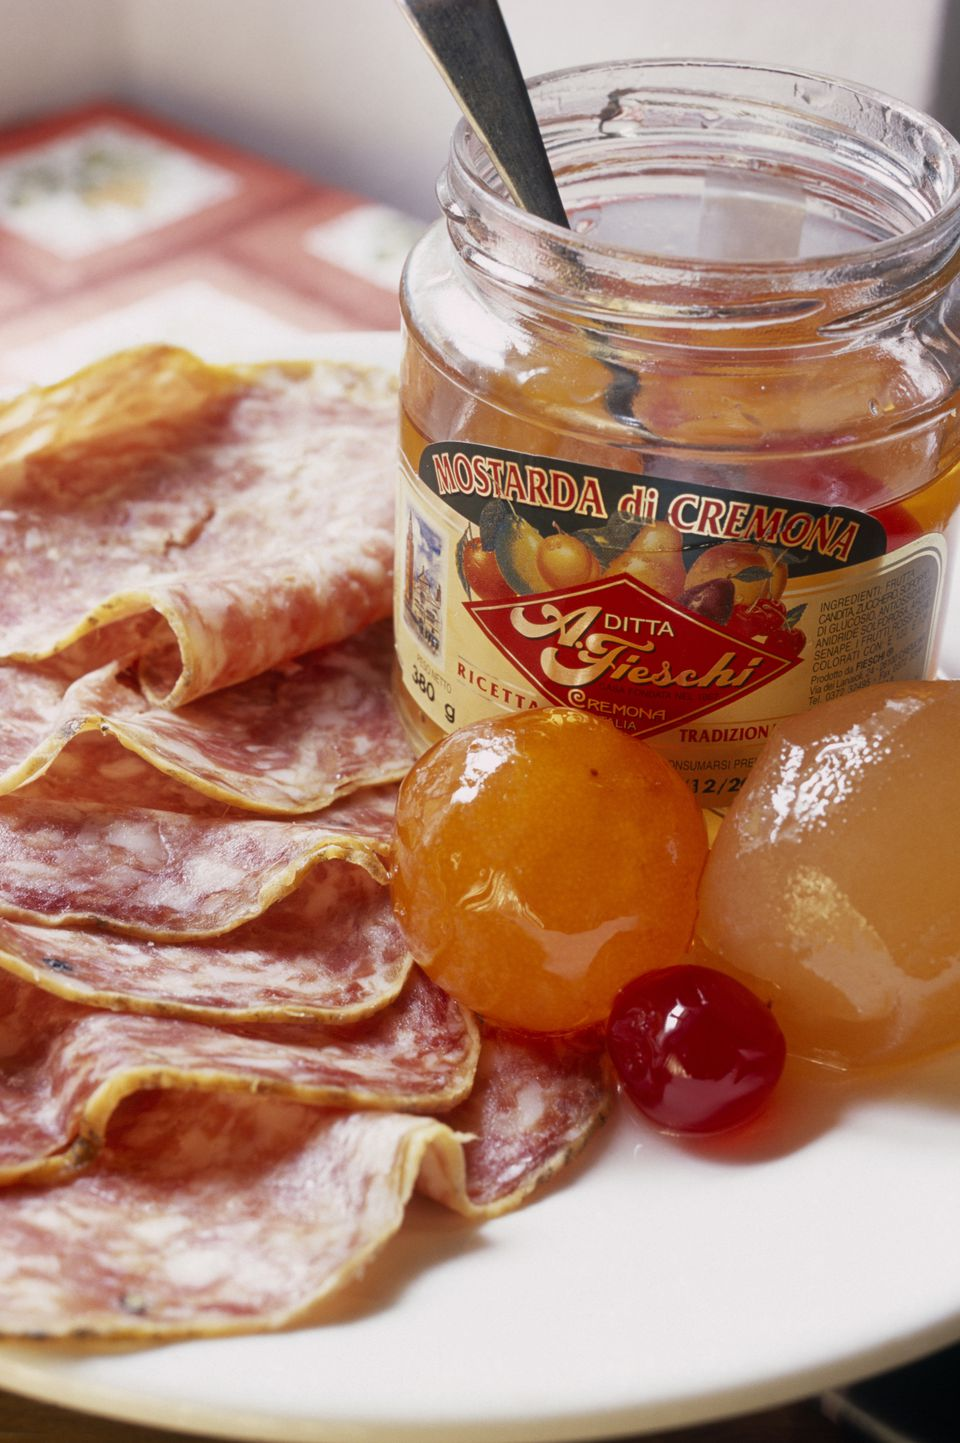 Mostarda from Cremona with a plate of salame